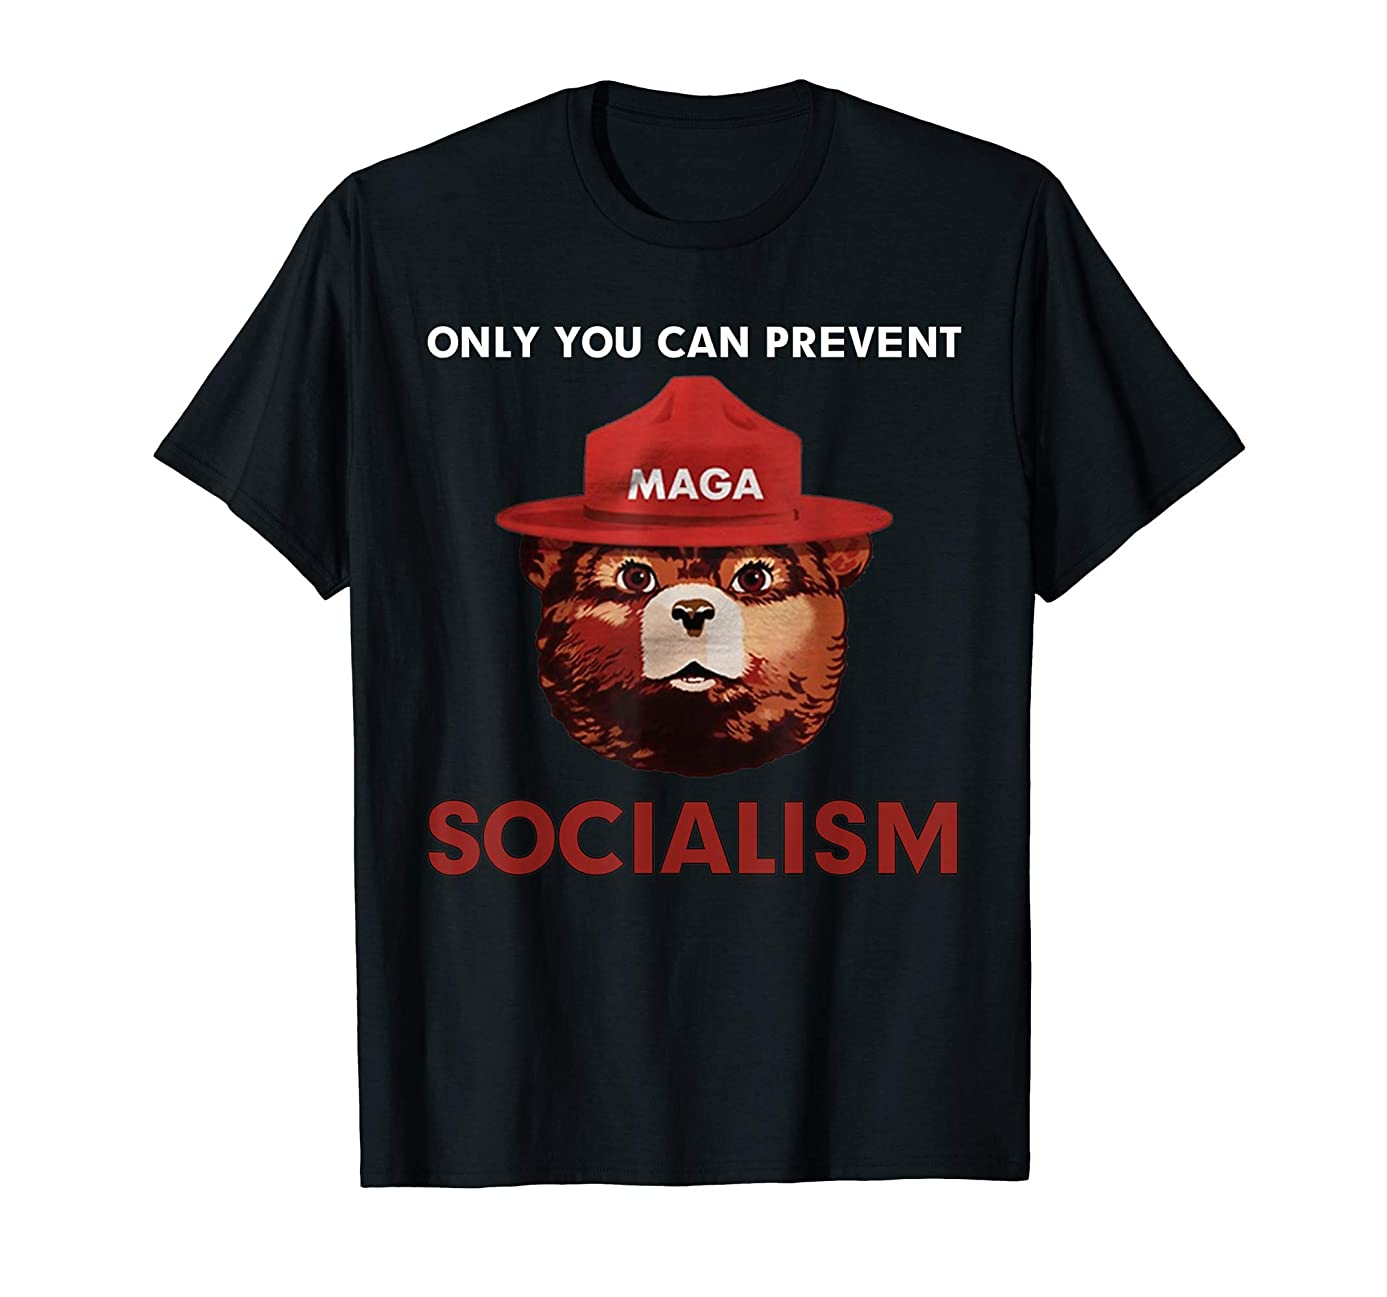 Only Can You Prevent Maga Socialism T-Shirt